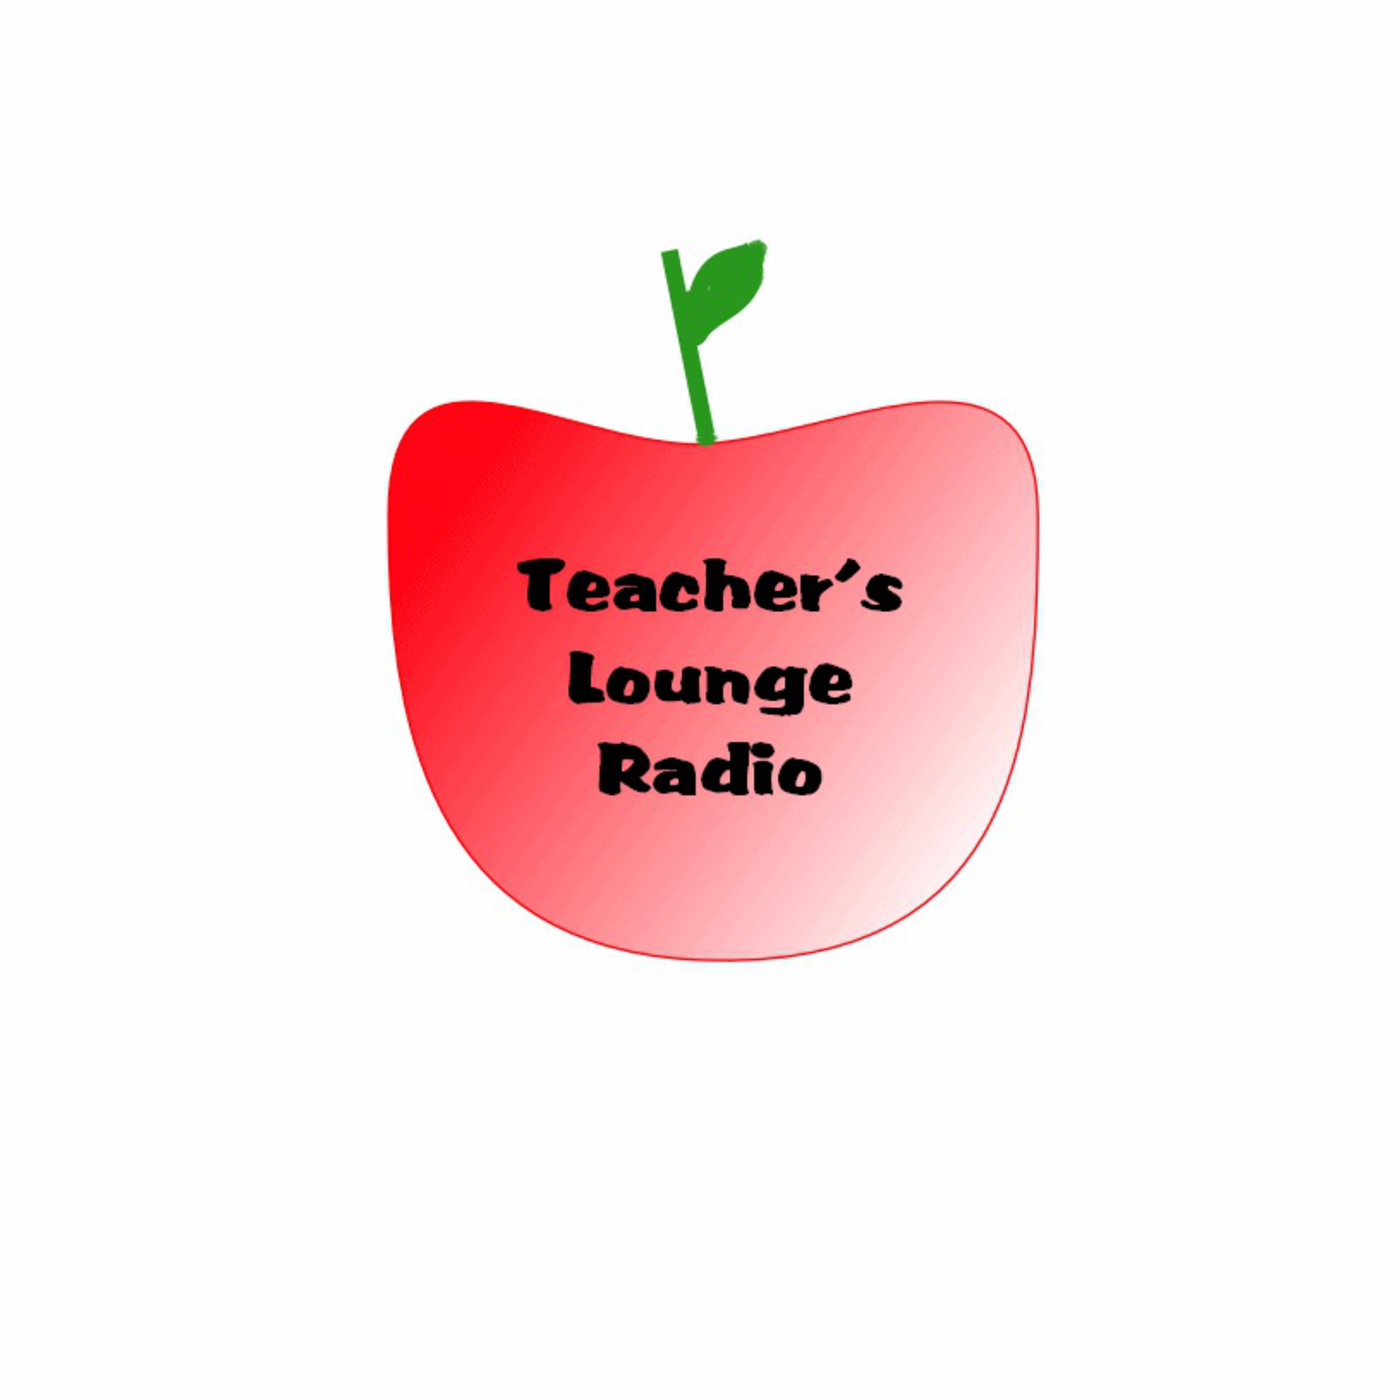 Teacher's Lounge Radio